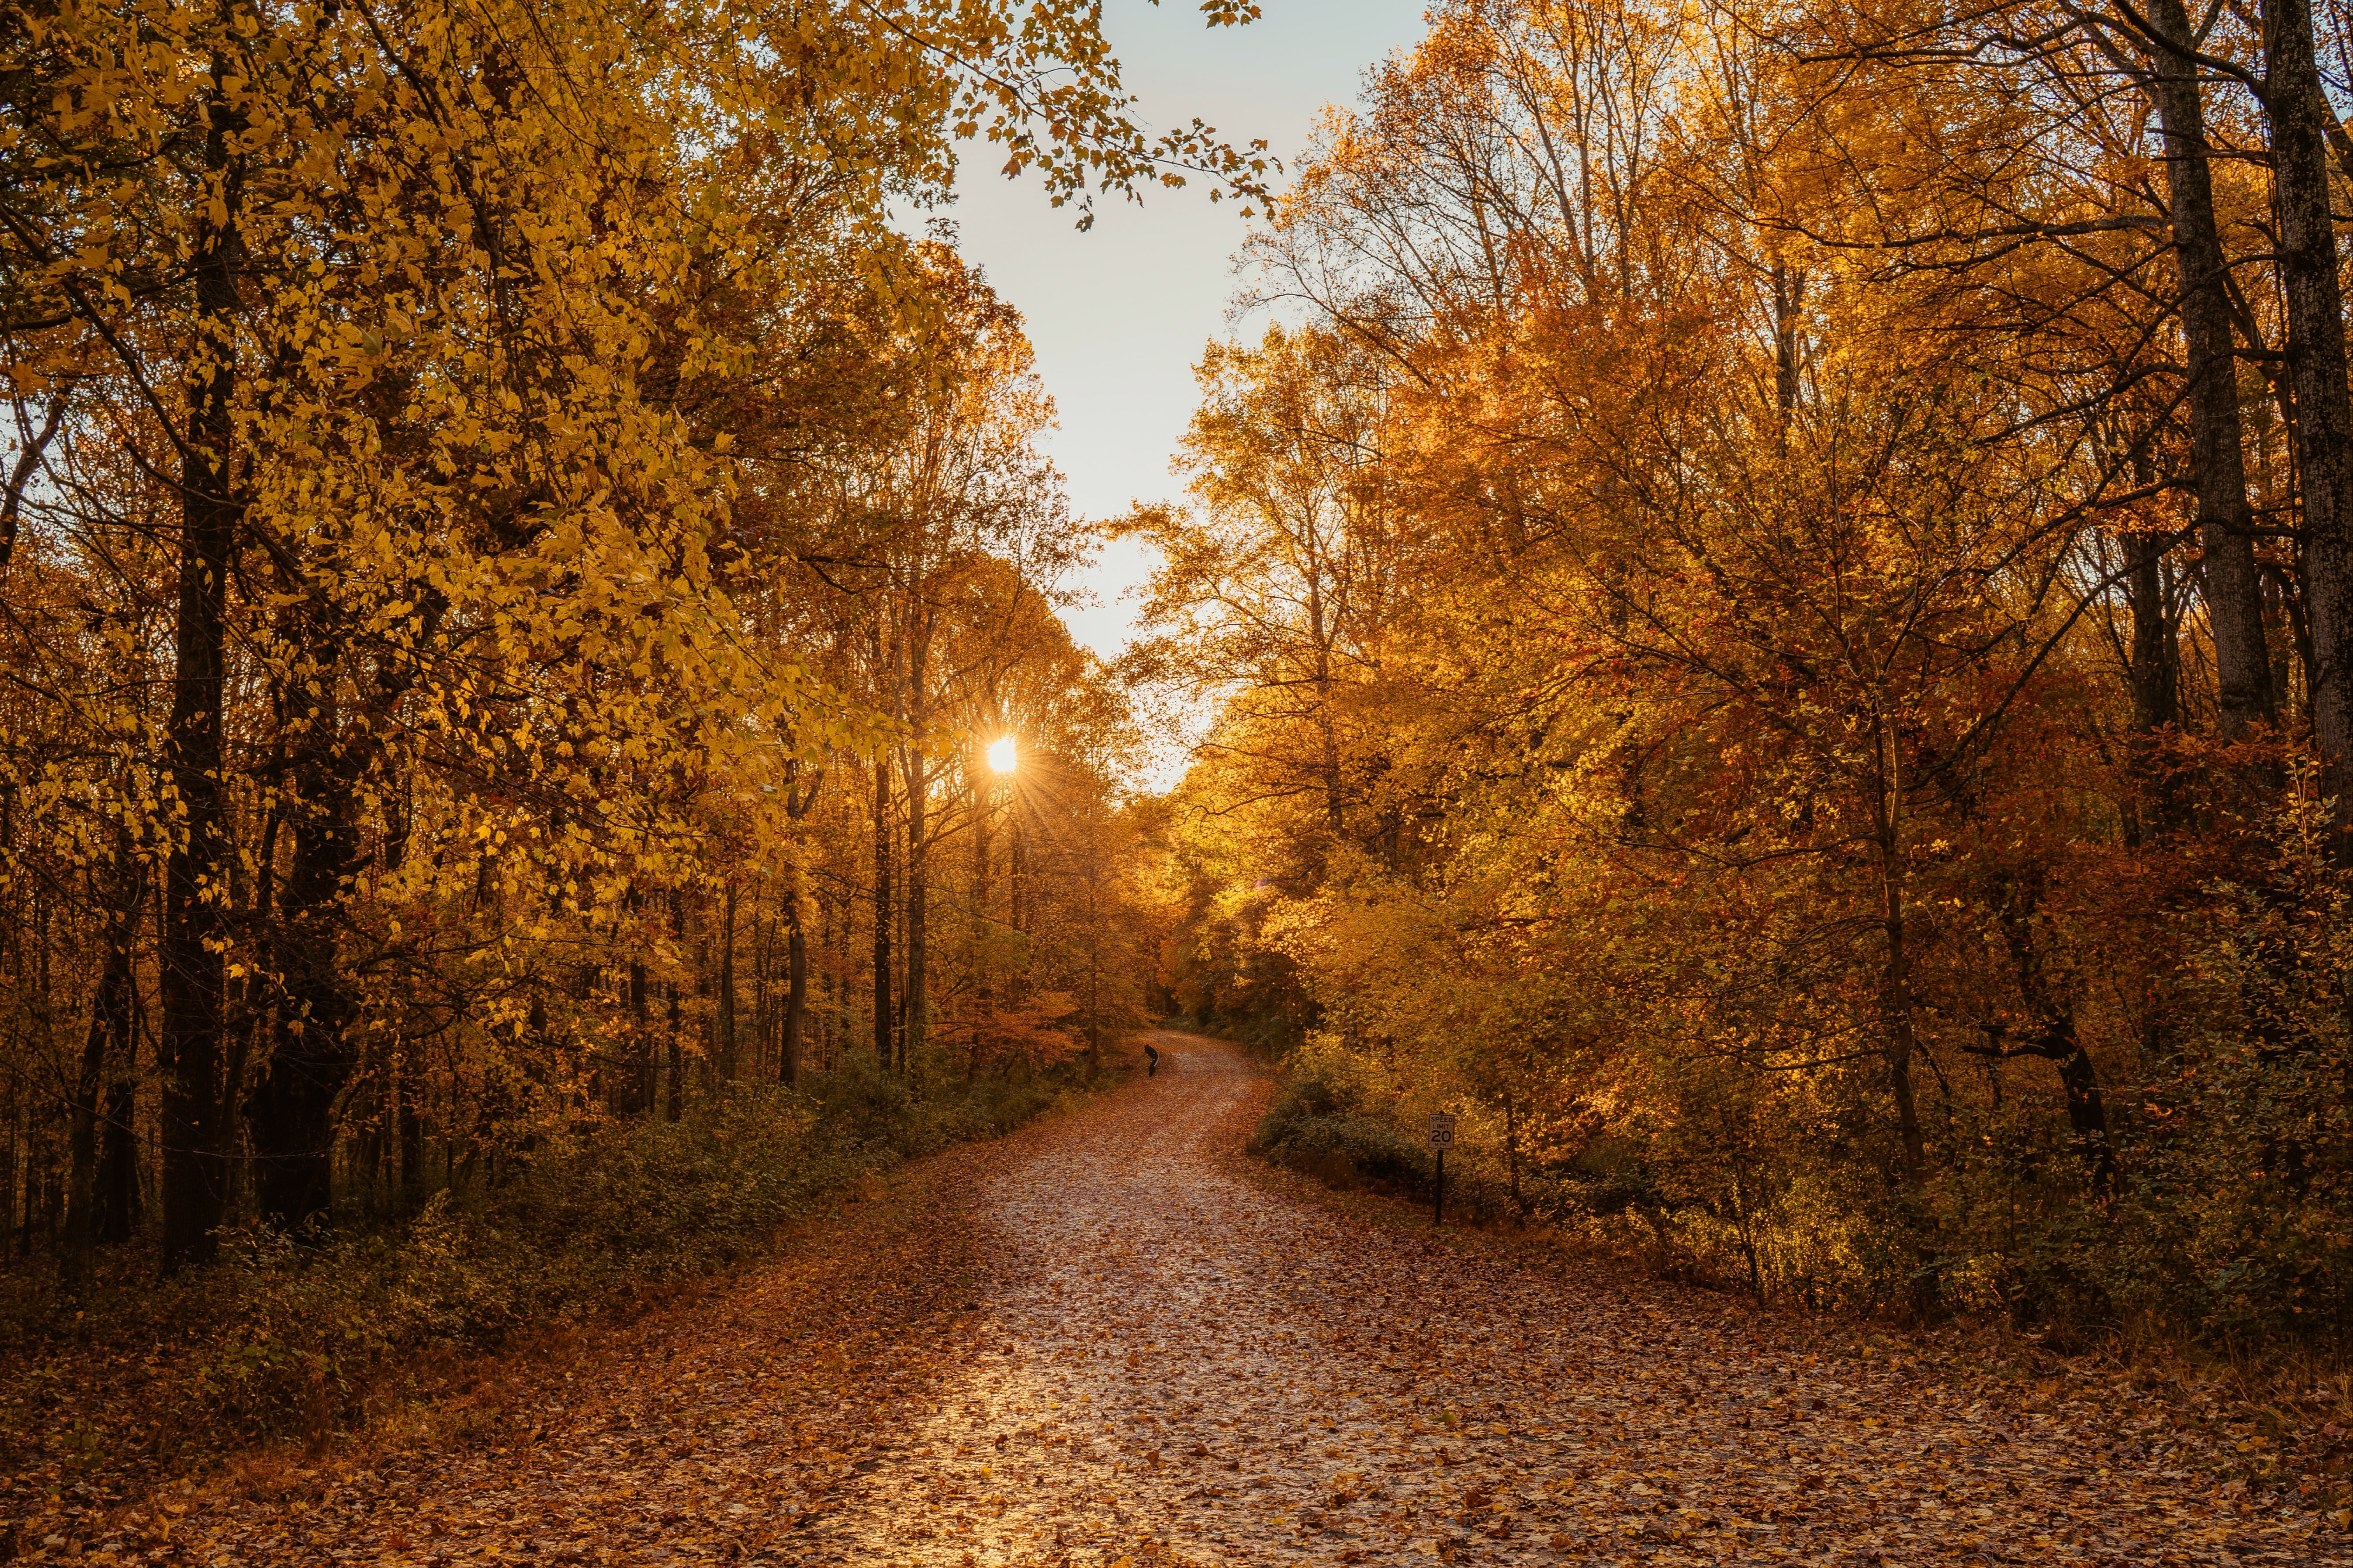 79162 download wallpaper Landscape, Nature, Trees, Autumn, Road, Forest screensavers and pictures for free